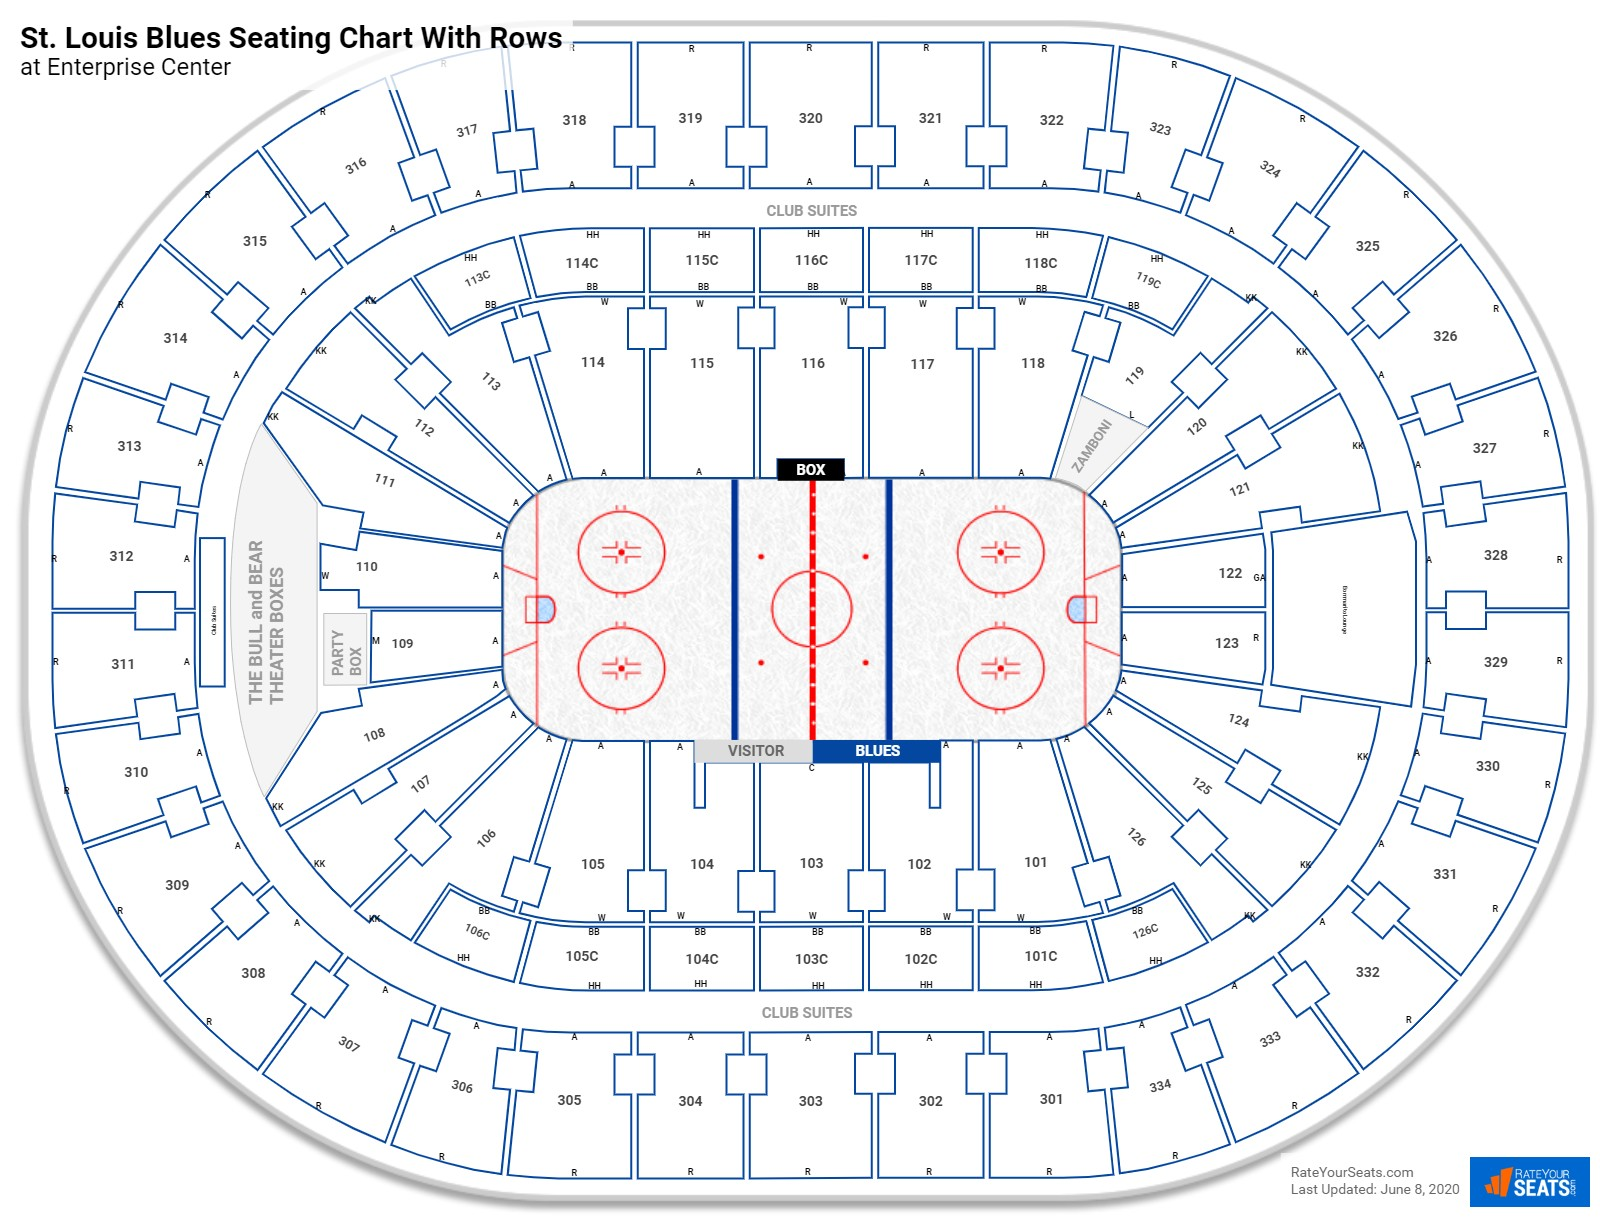 Enterprise Center seating chart with rows hockey